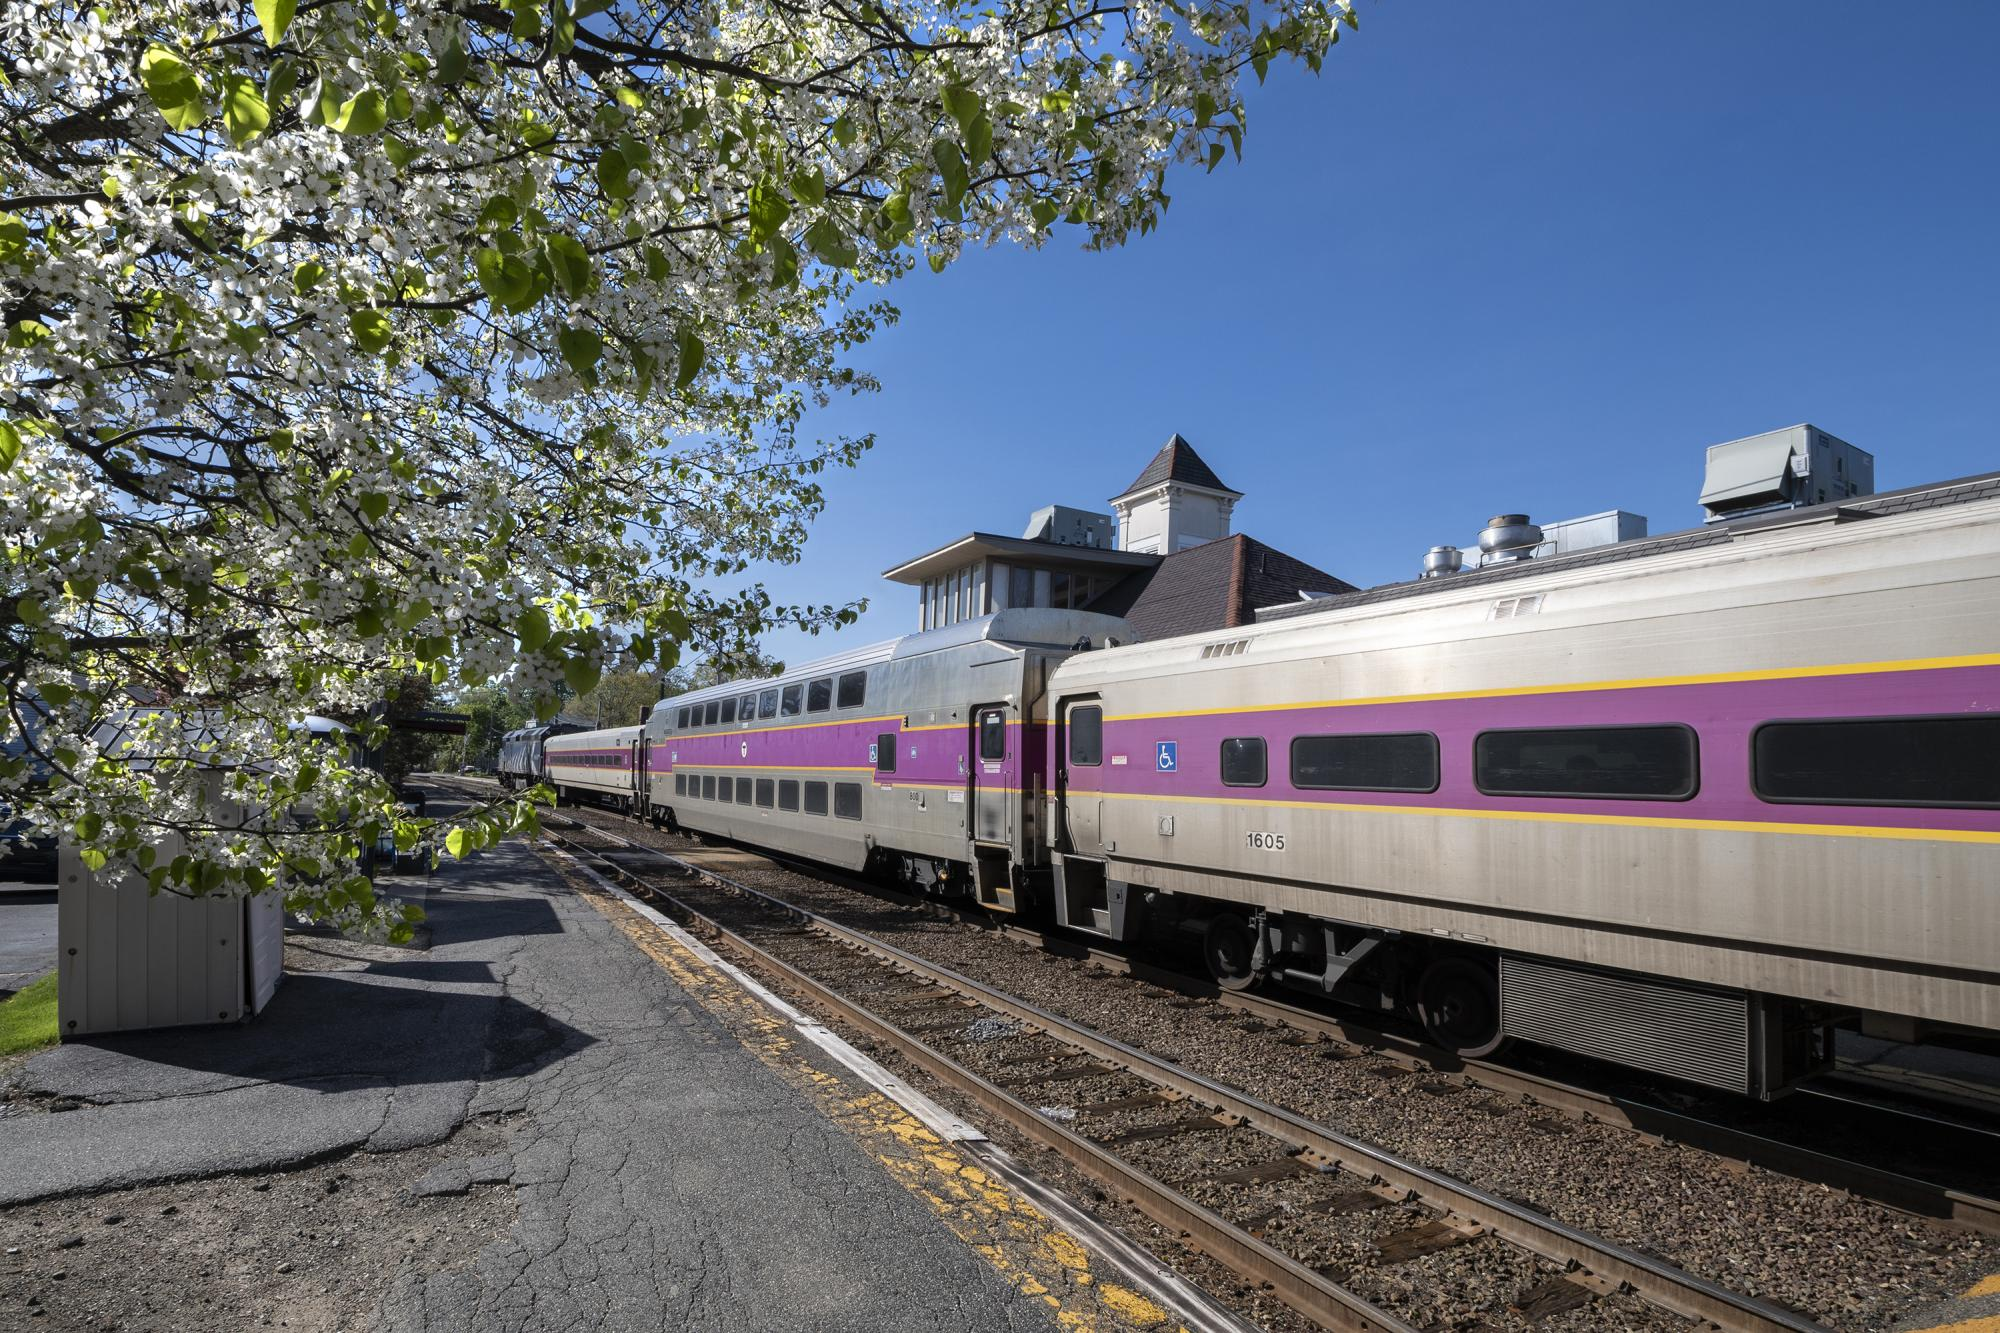 Commuter Rail in Concord during springtime